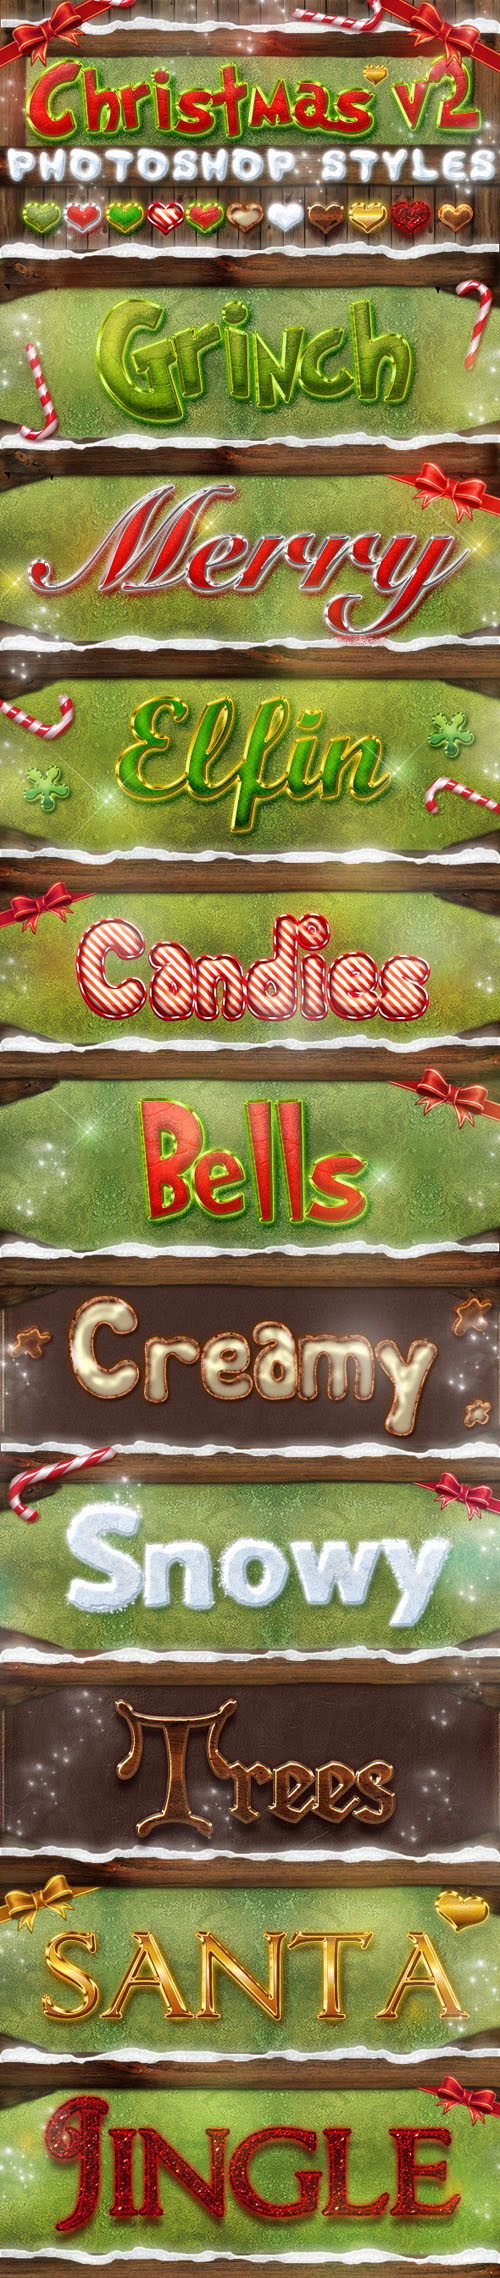 GraphicRiver - Christmas Photoshop Styles, part 2